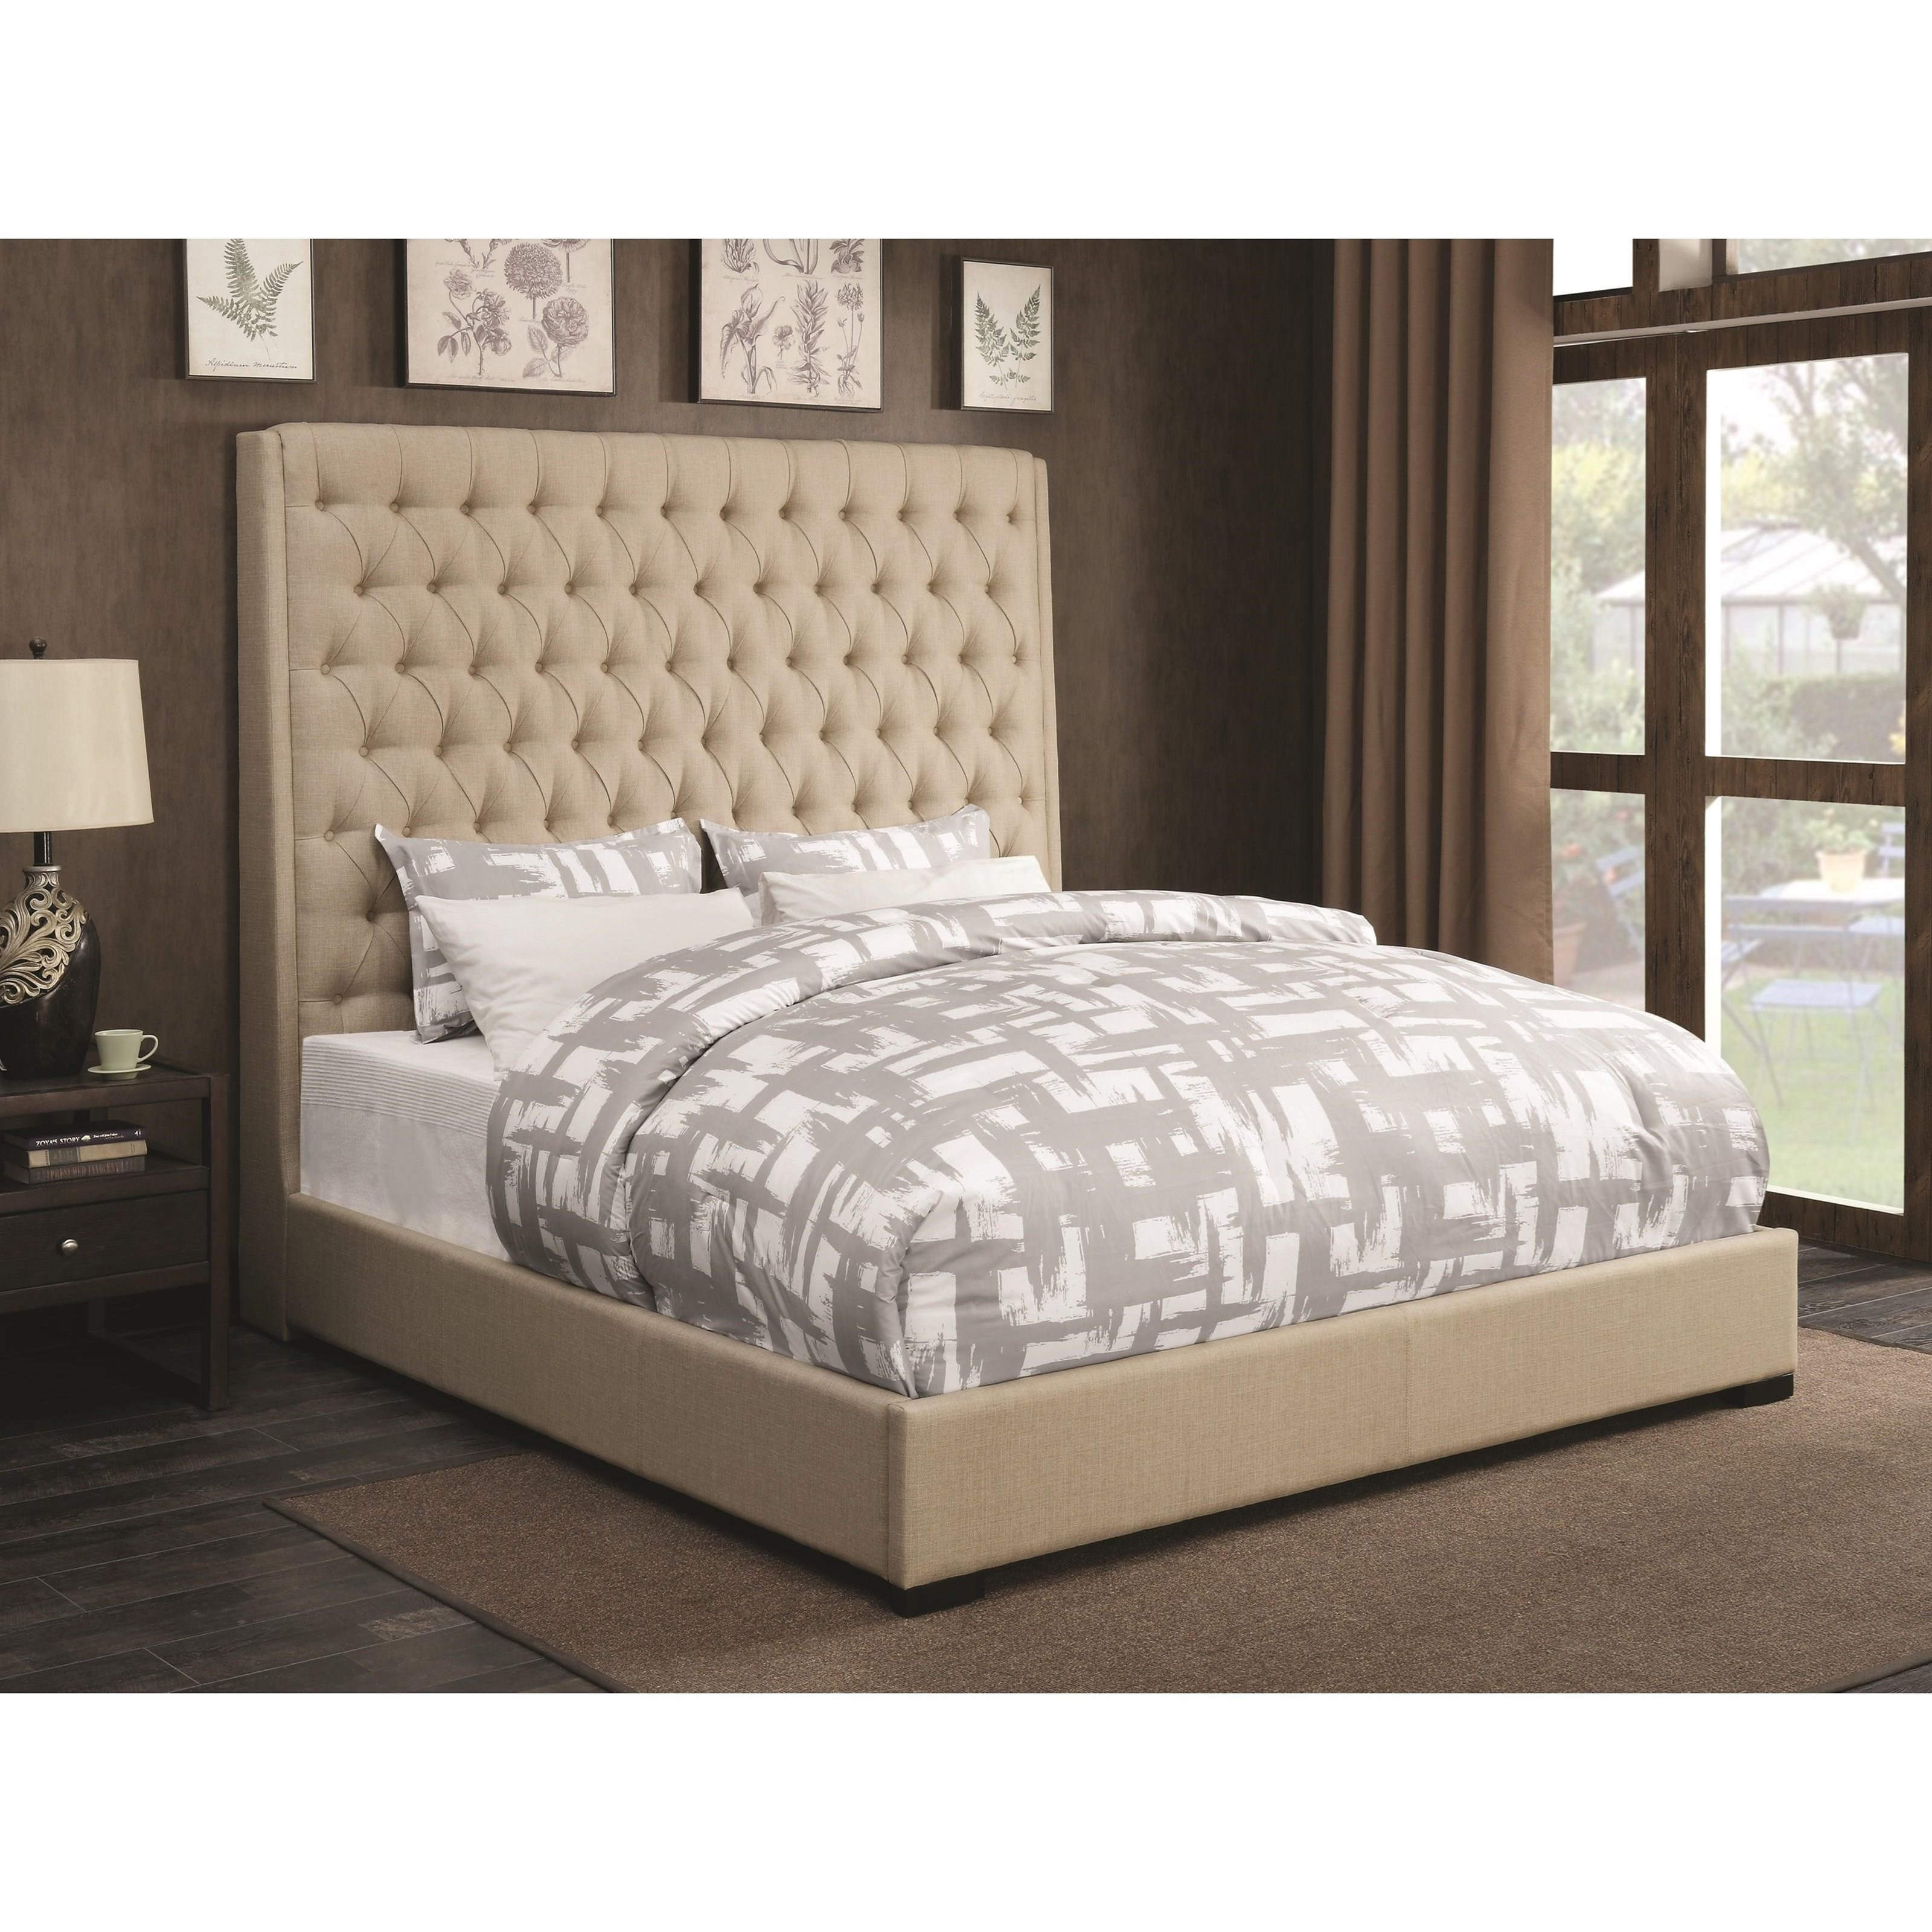 Coaster Upholstered Beds Queen Bed - Item Number: 300722Q